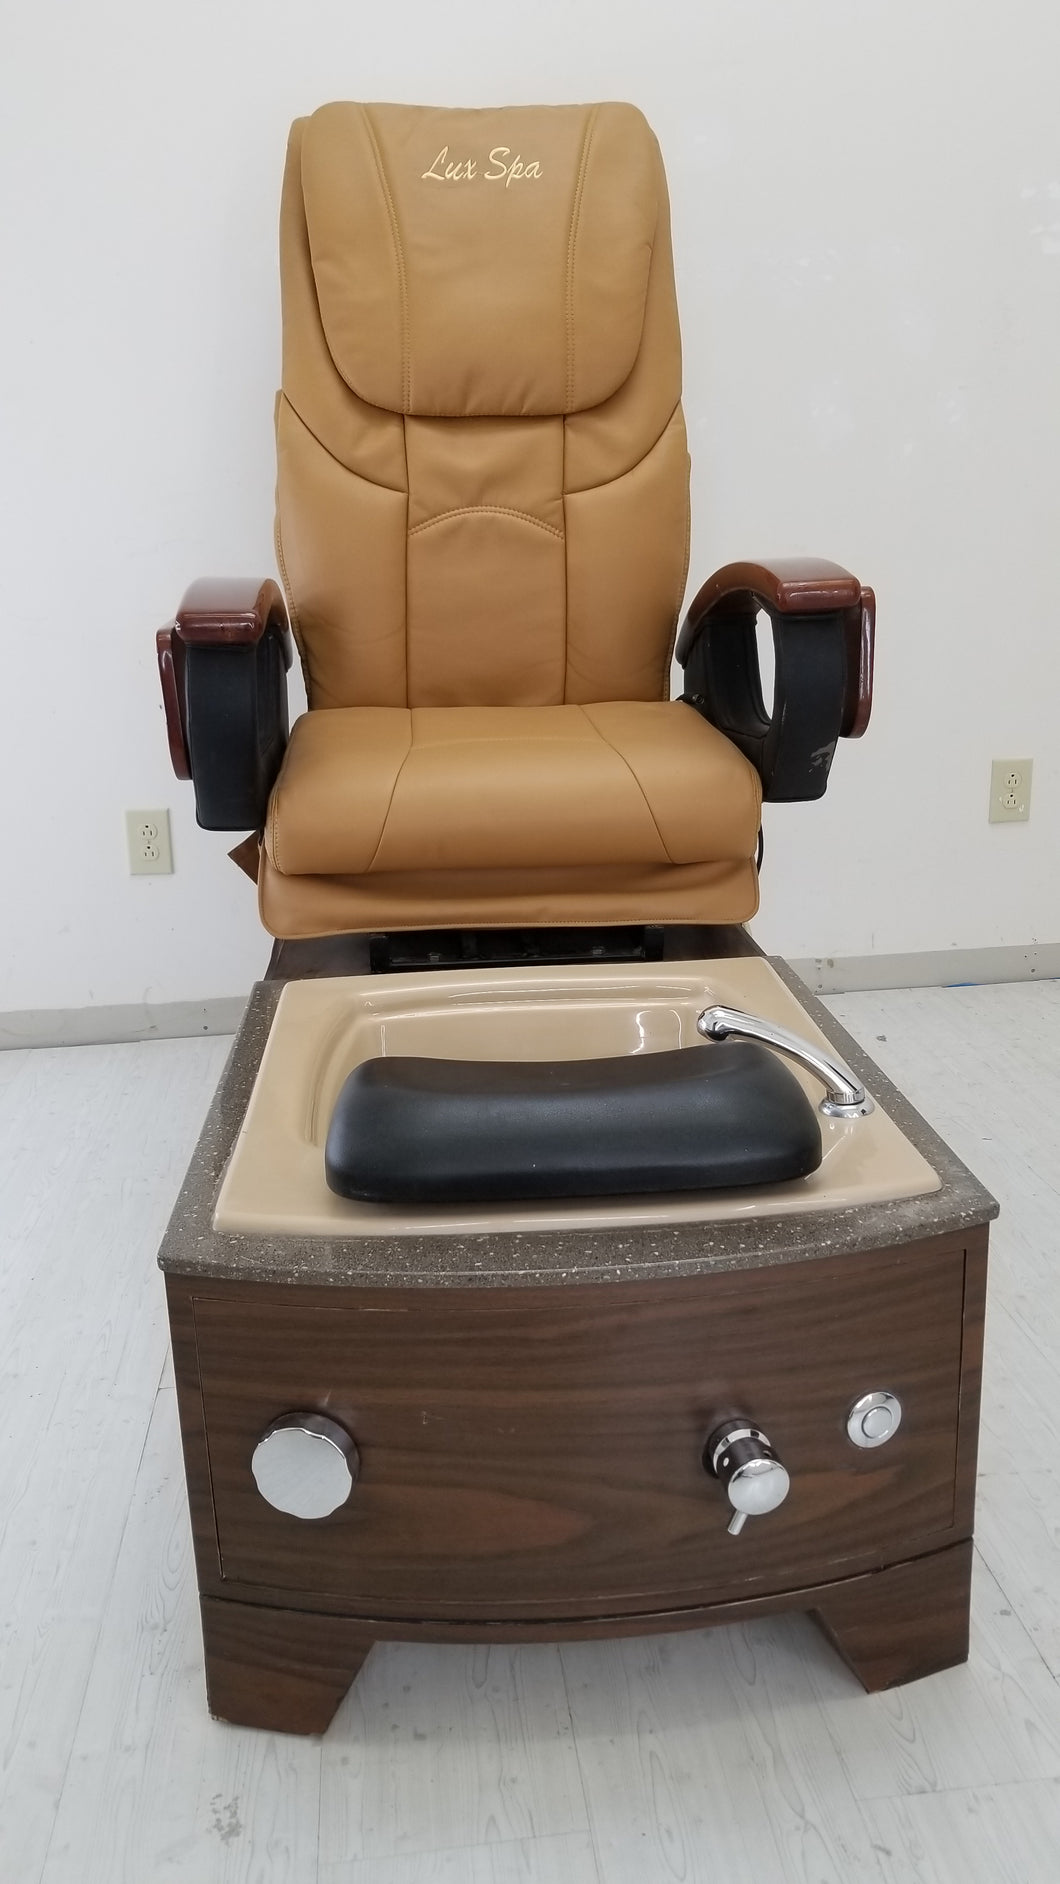 Renewed pedicure chair - Call or text us for shipping quote 7044903934